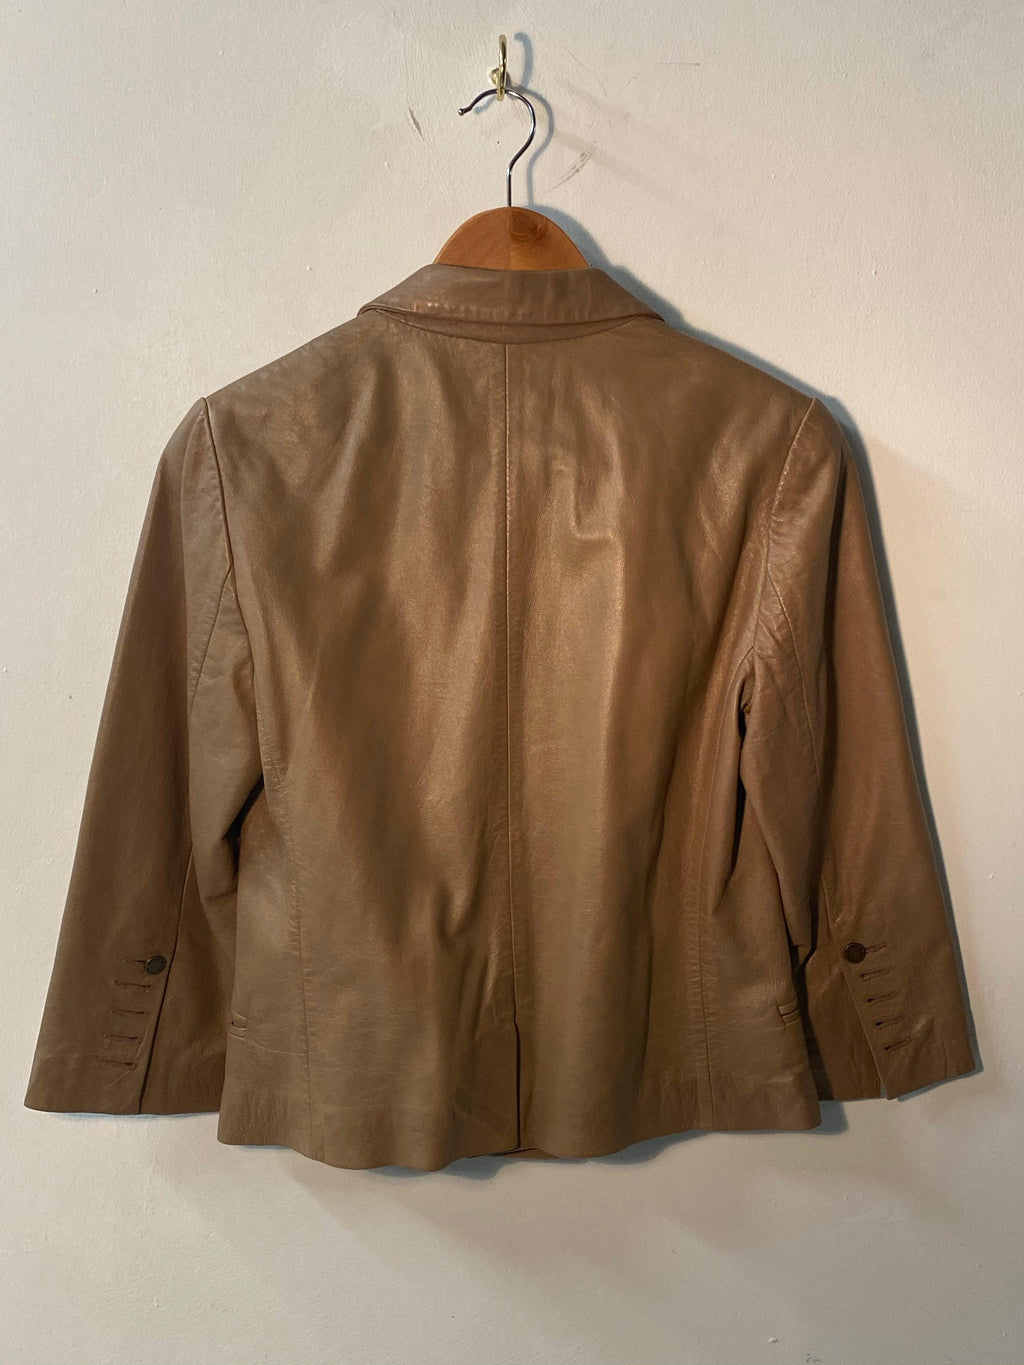 Zadig & Voltaire Deluxe Leather Jacket Taupe Size M